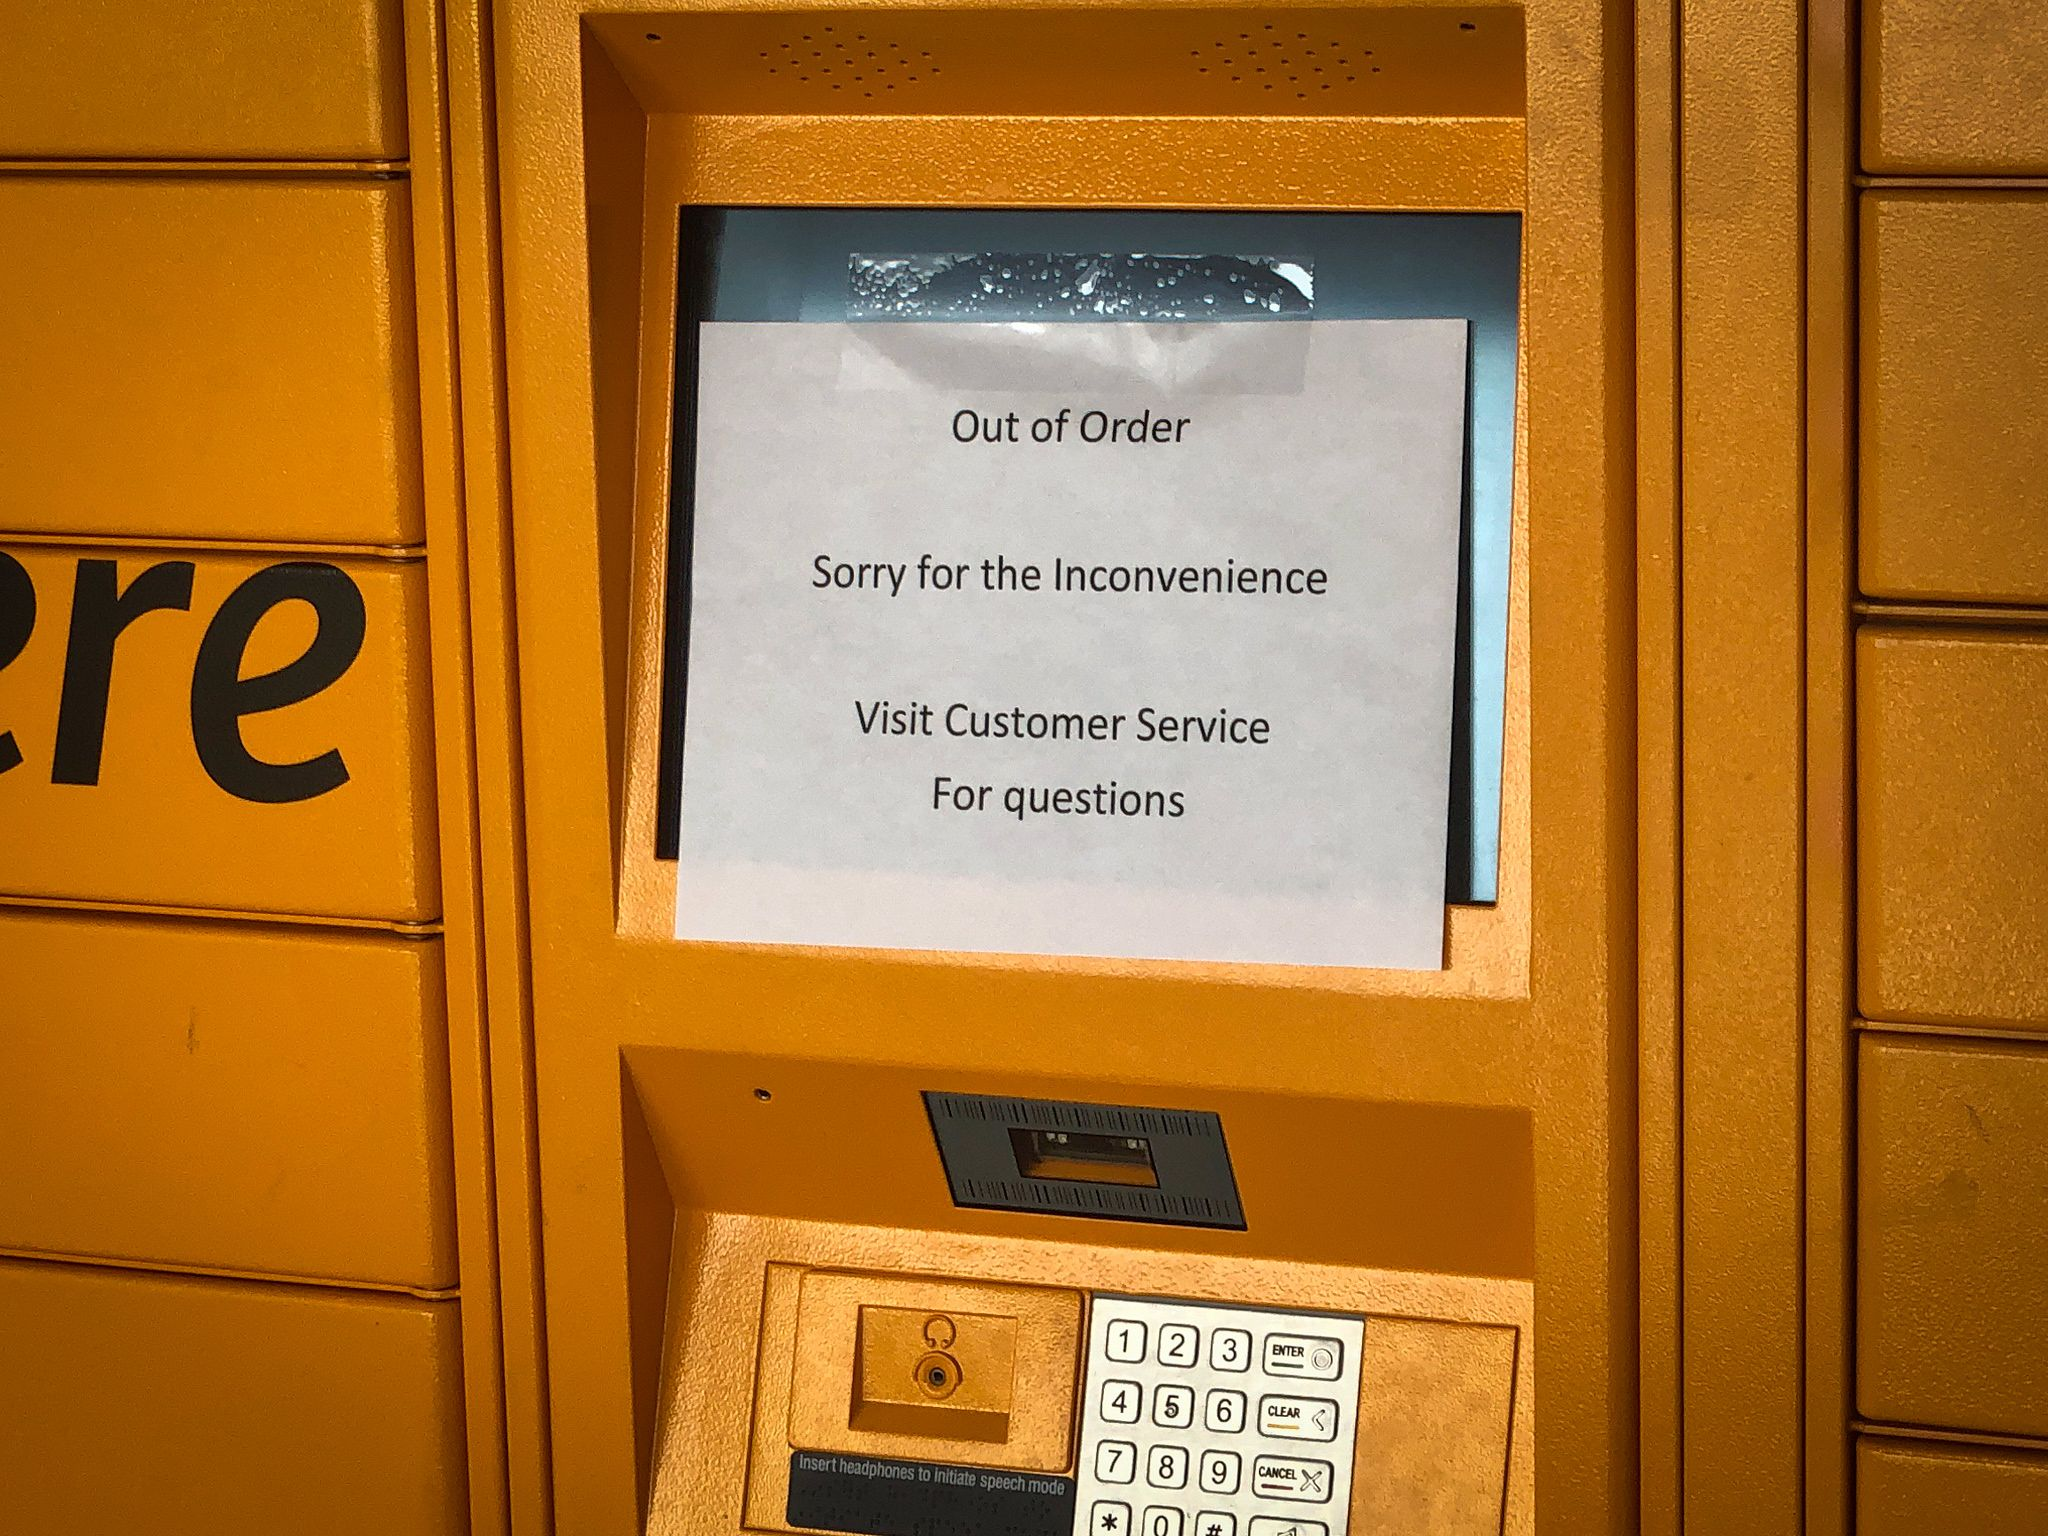 Amazon Locker: Out of Order